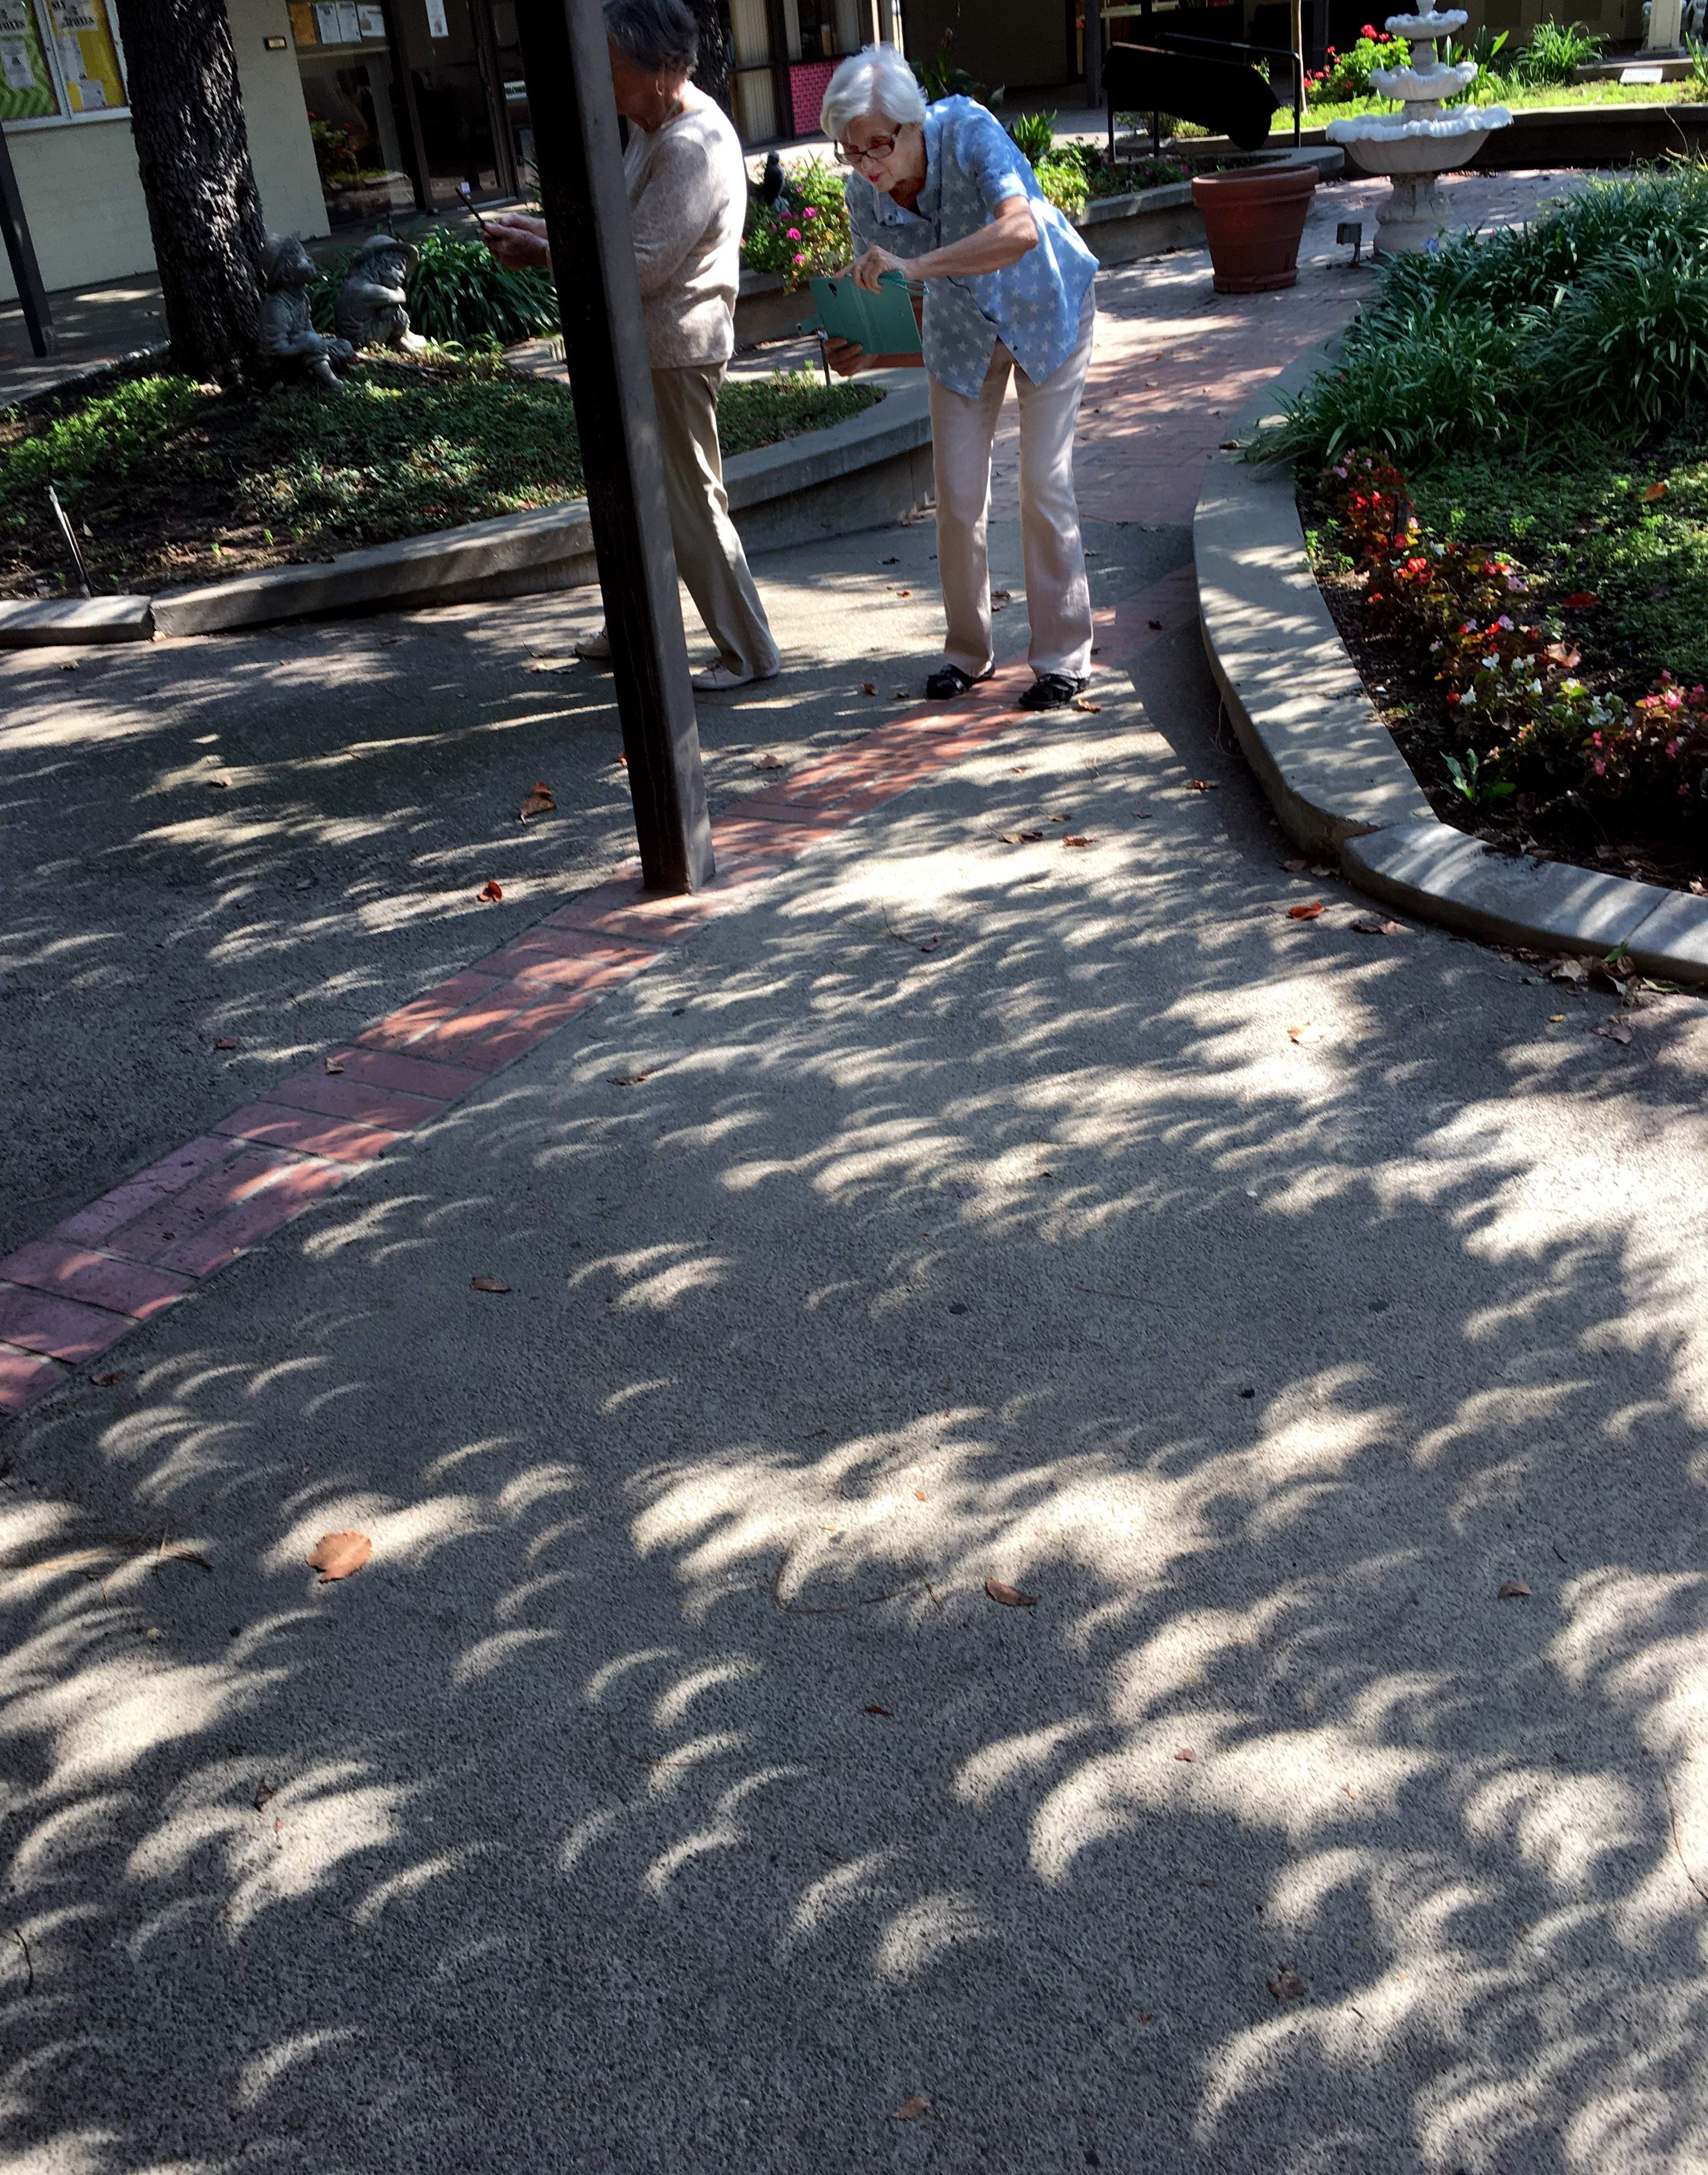 Janine Ford takes time out from her art class at Oak Park senior center to photograph the eclipse shadows on the garden walkway. [CALIXTRO ROMIAS/THE RECORD]